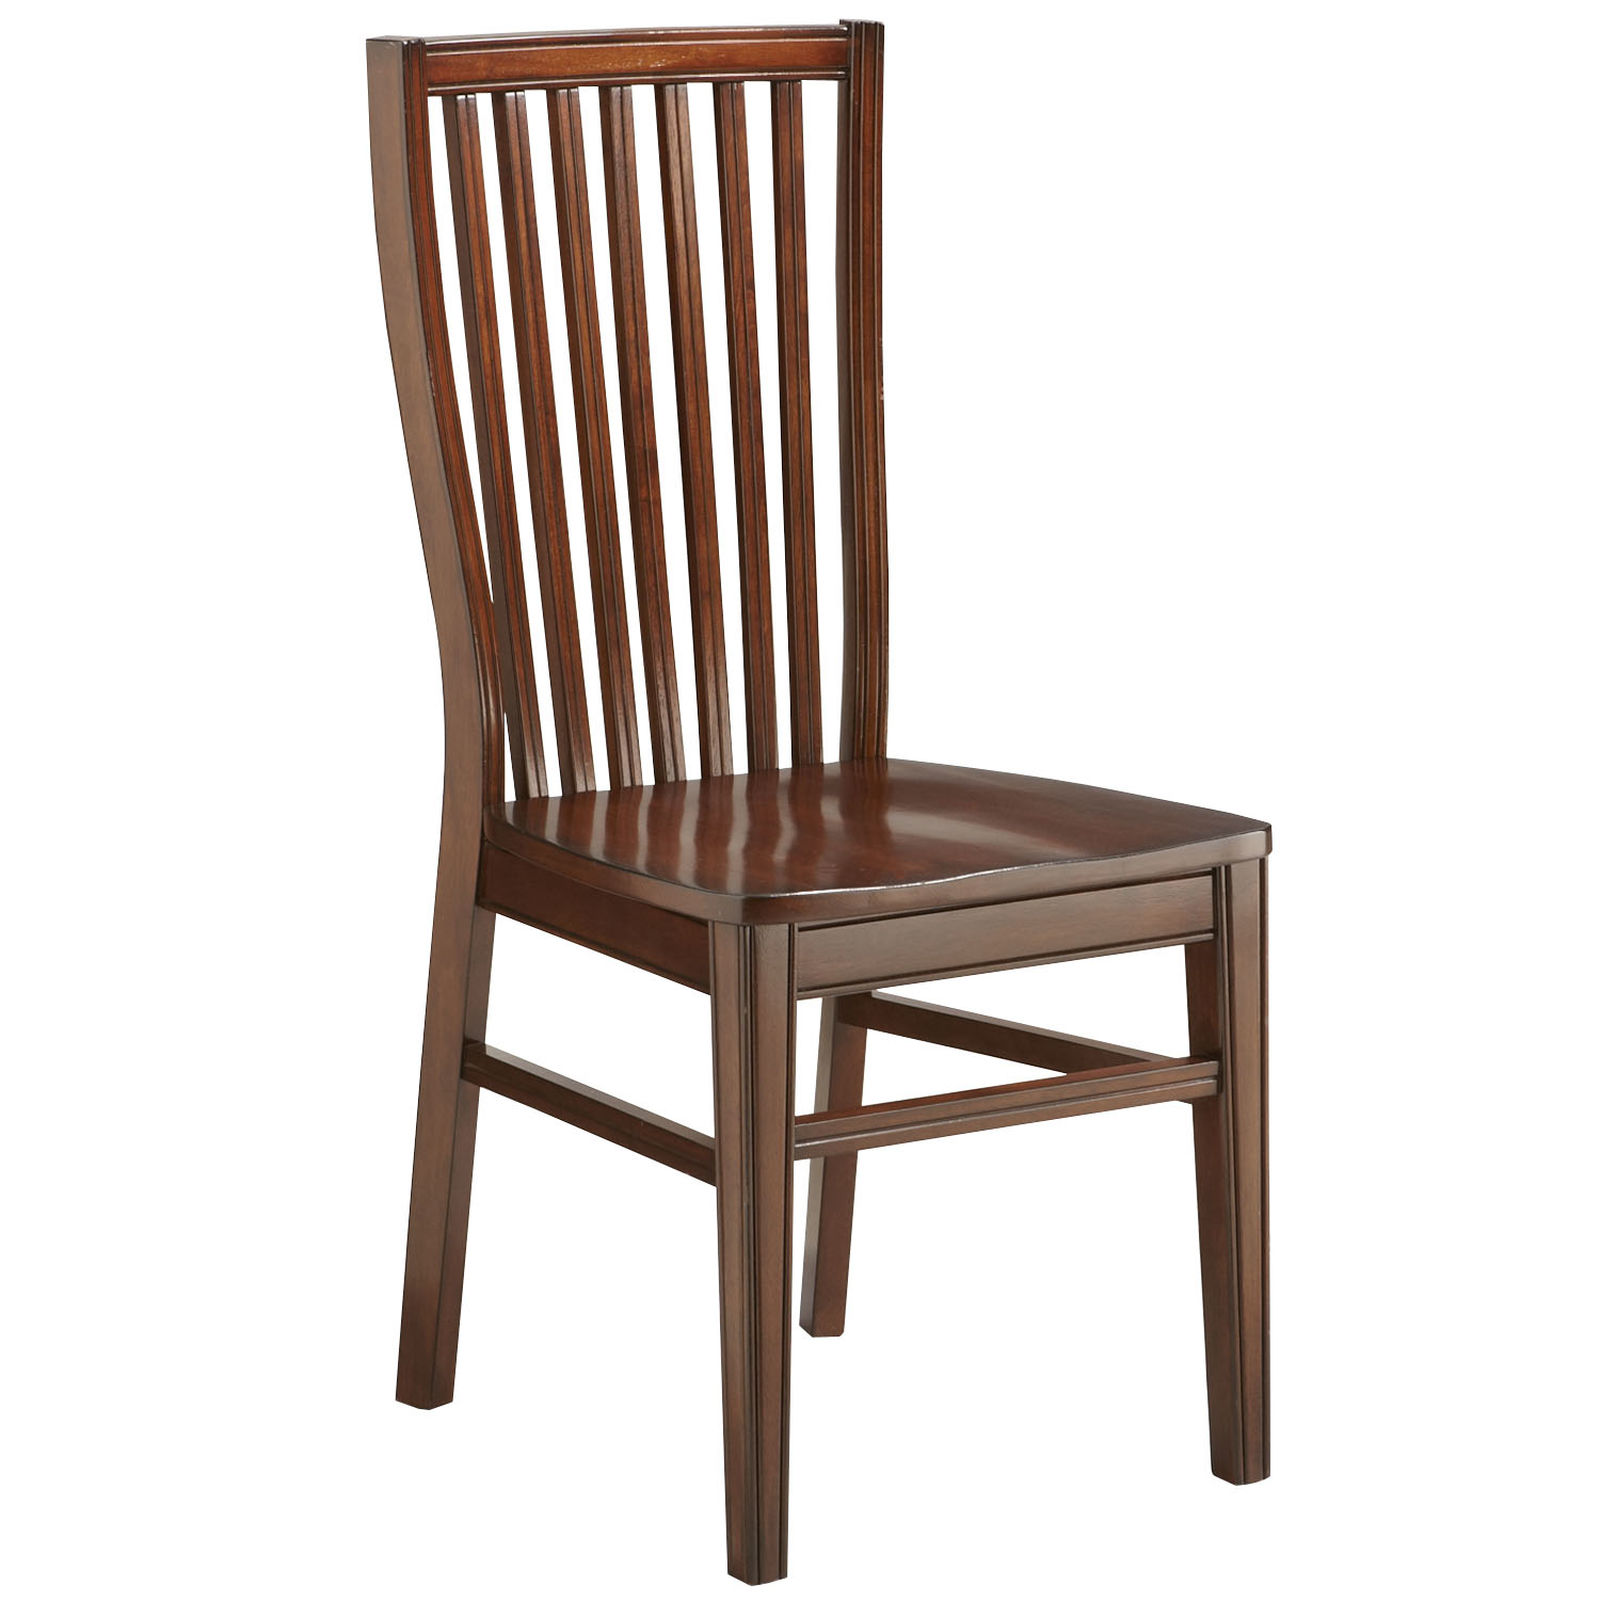 Ronan Tobacco Brown Dining Chair | Pier 1 Imports